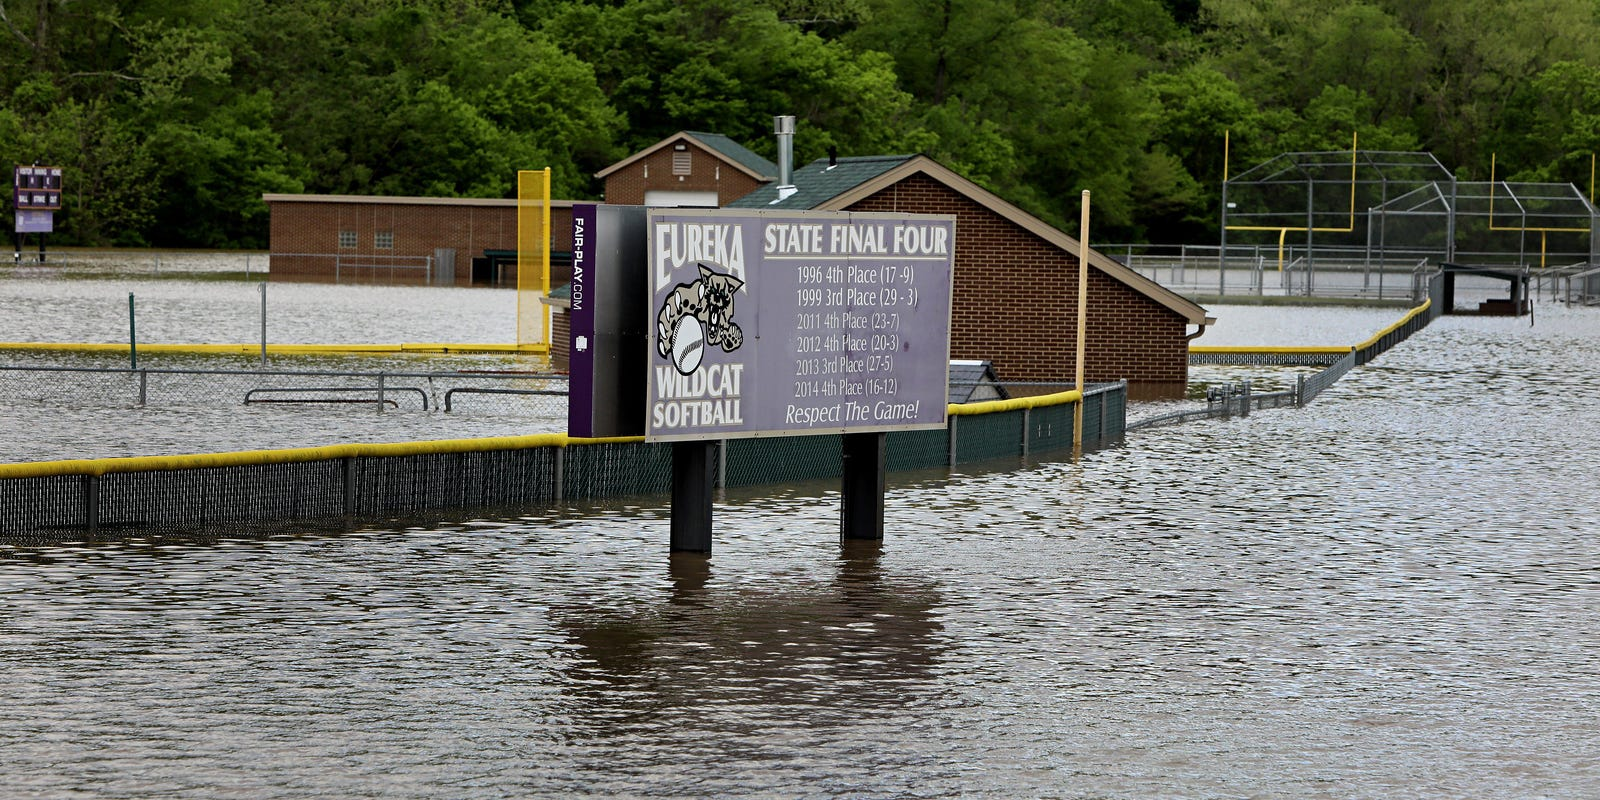 More rain in the forecast adds to woes in flooded Midwest